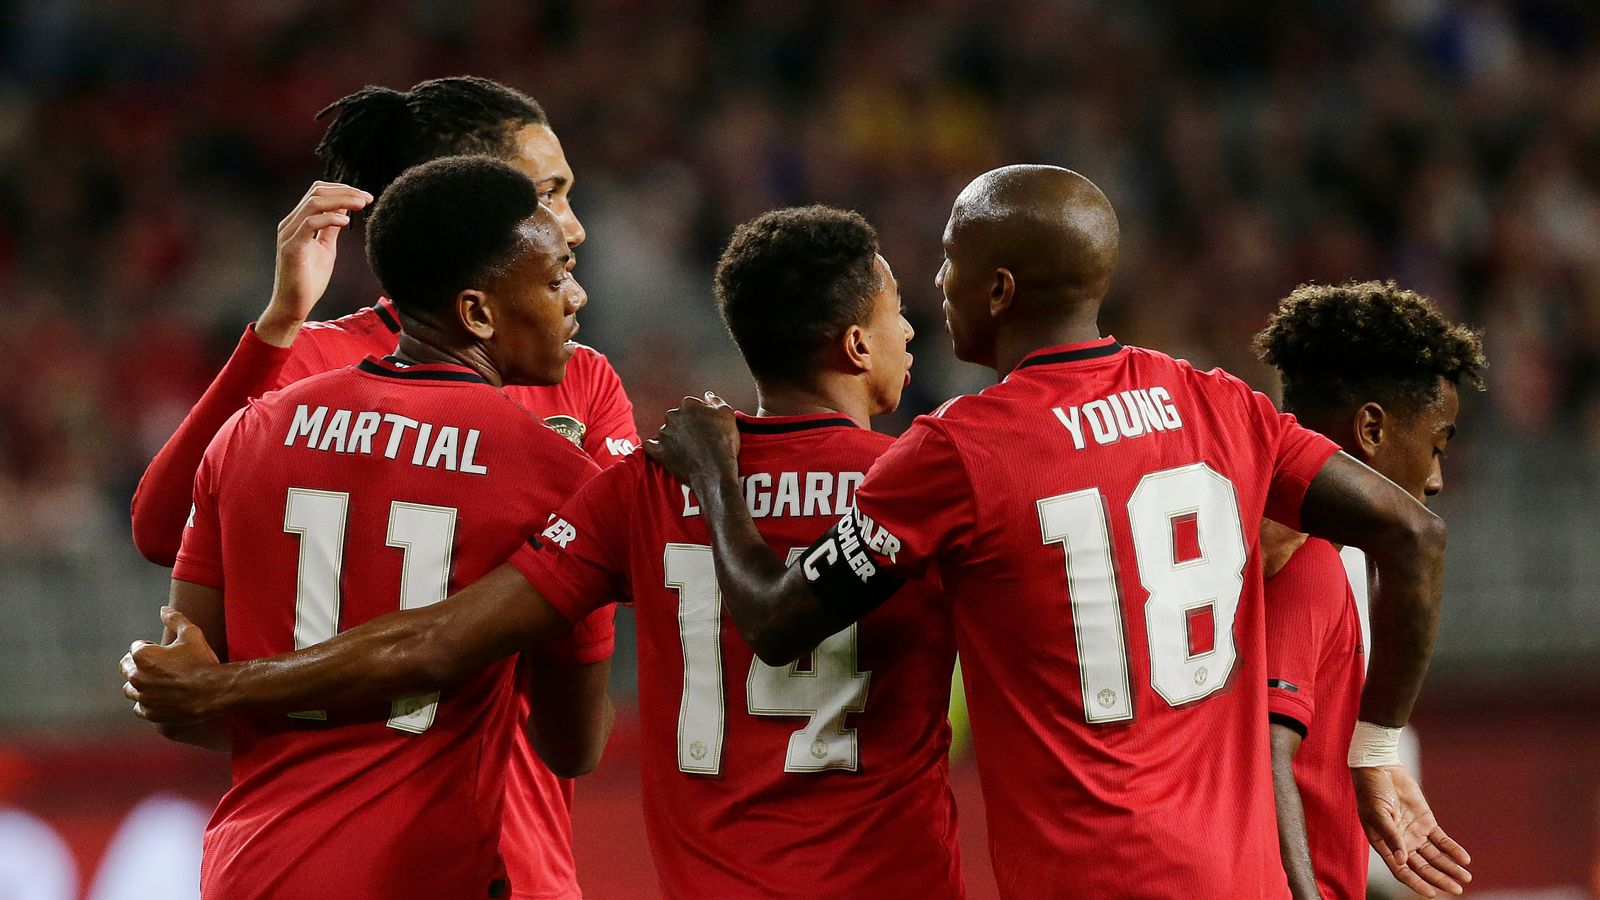 Man Utd 4 - 0 Leeds - Match Report & Highlights